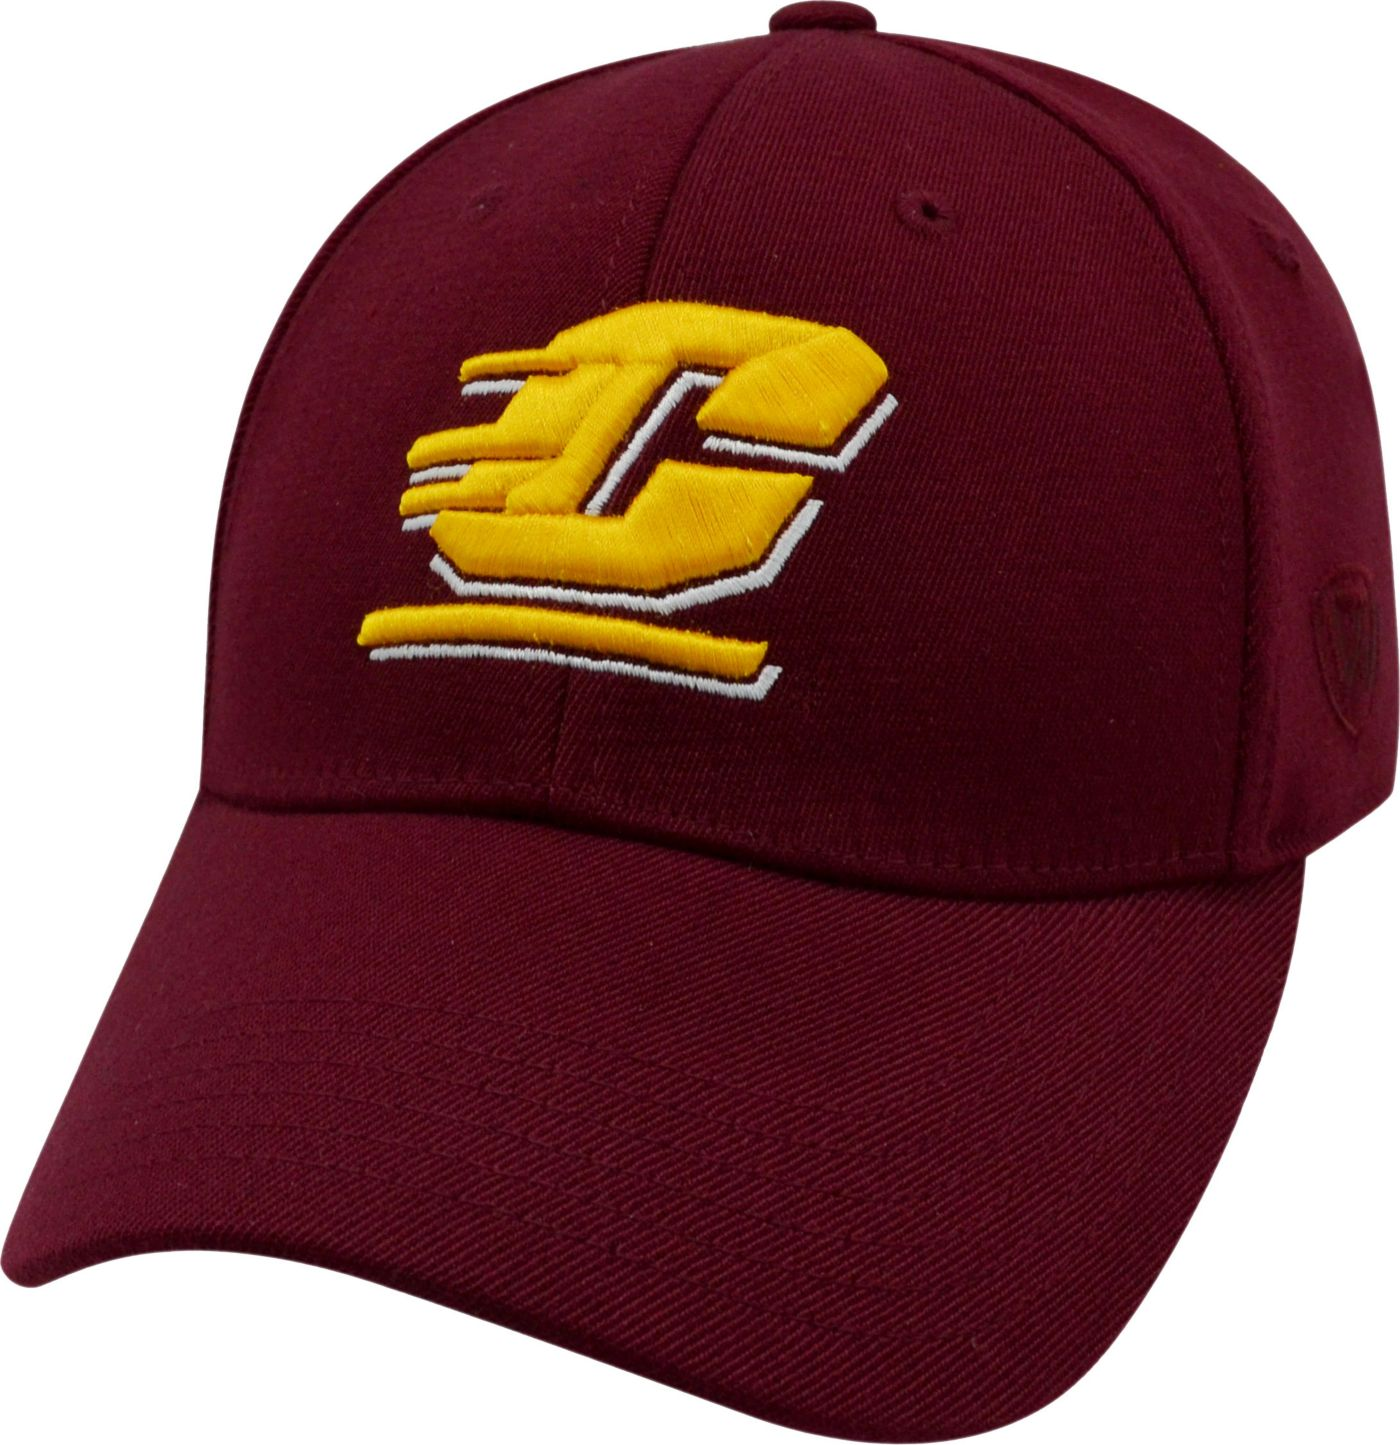 Top of the World Men's Central Michigan Chippewas Maroon Premium Collection M-Fit Hat